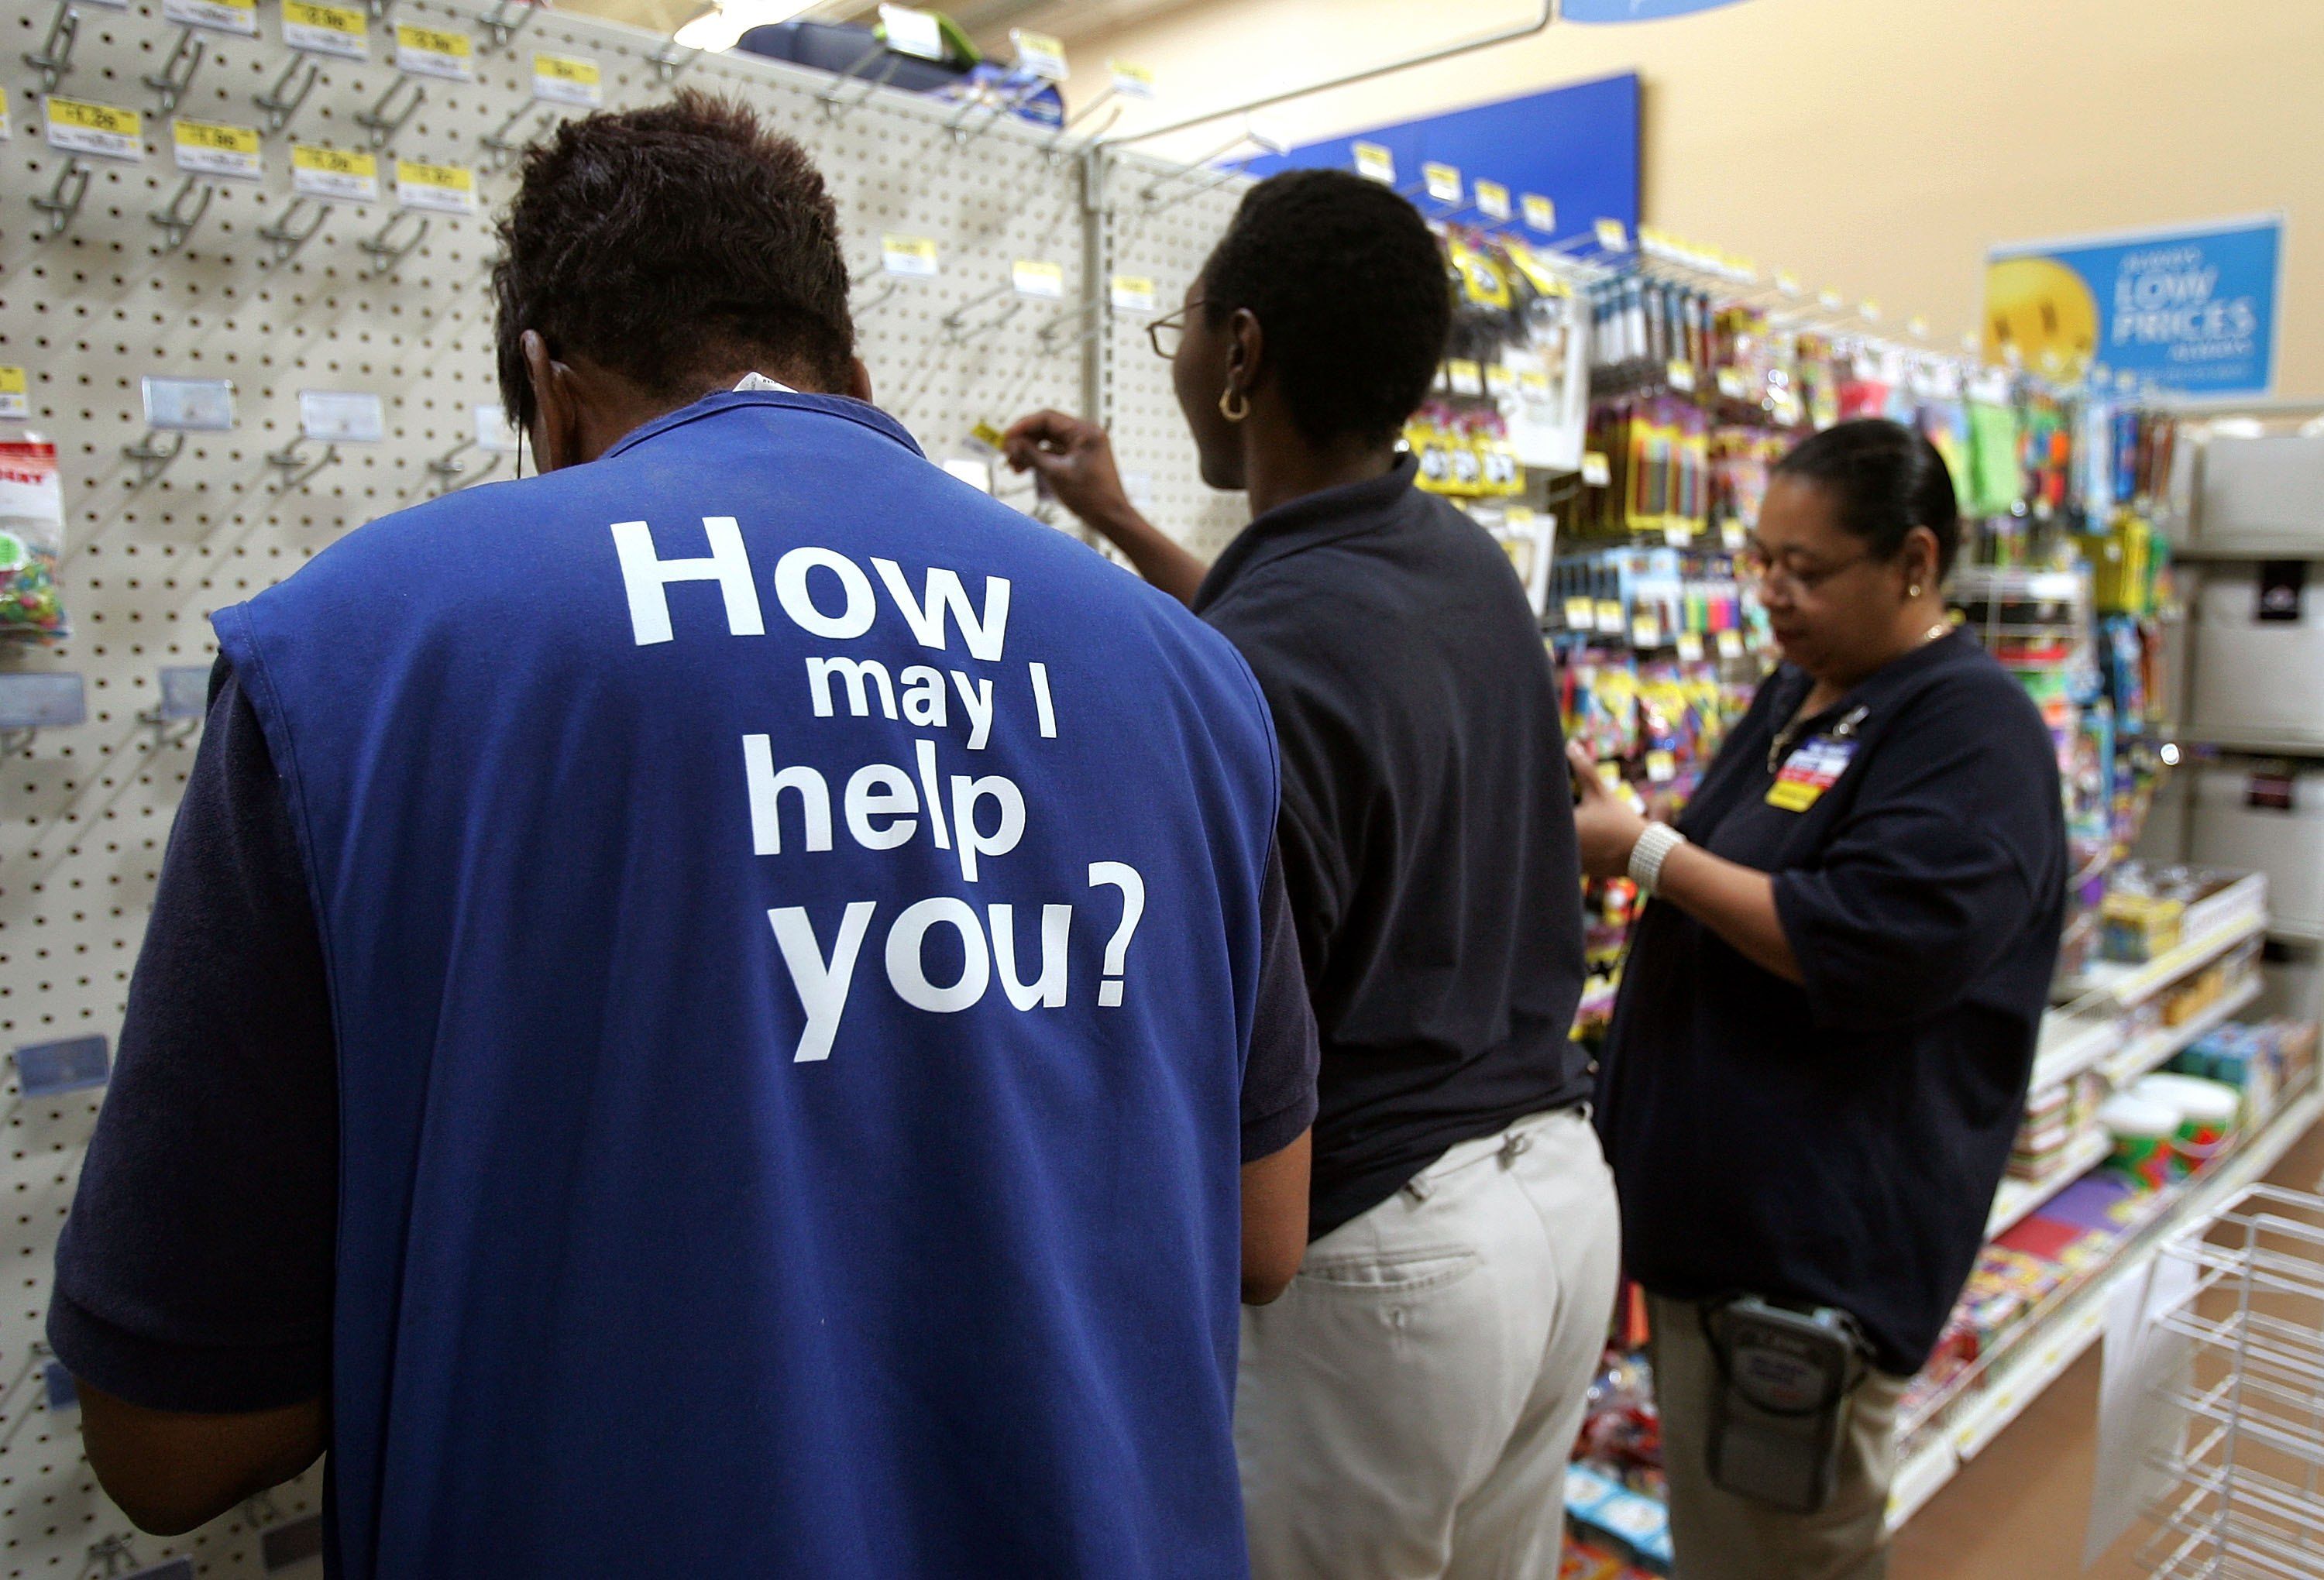 wal mart employee reward system When walmart, one of texas' largest private employers, dropped out of the state's  workers' compensation system, it was a heavy blow to  fifteen percent of texas  businesses with more than 500 employees do not carry state.